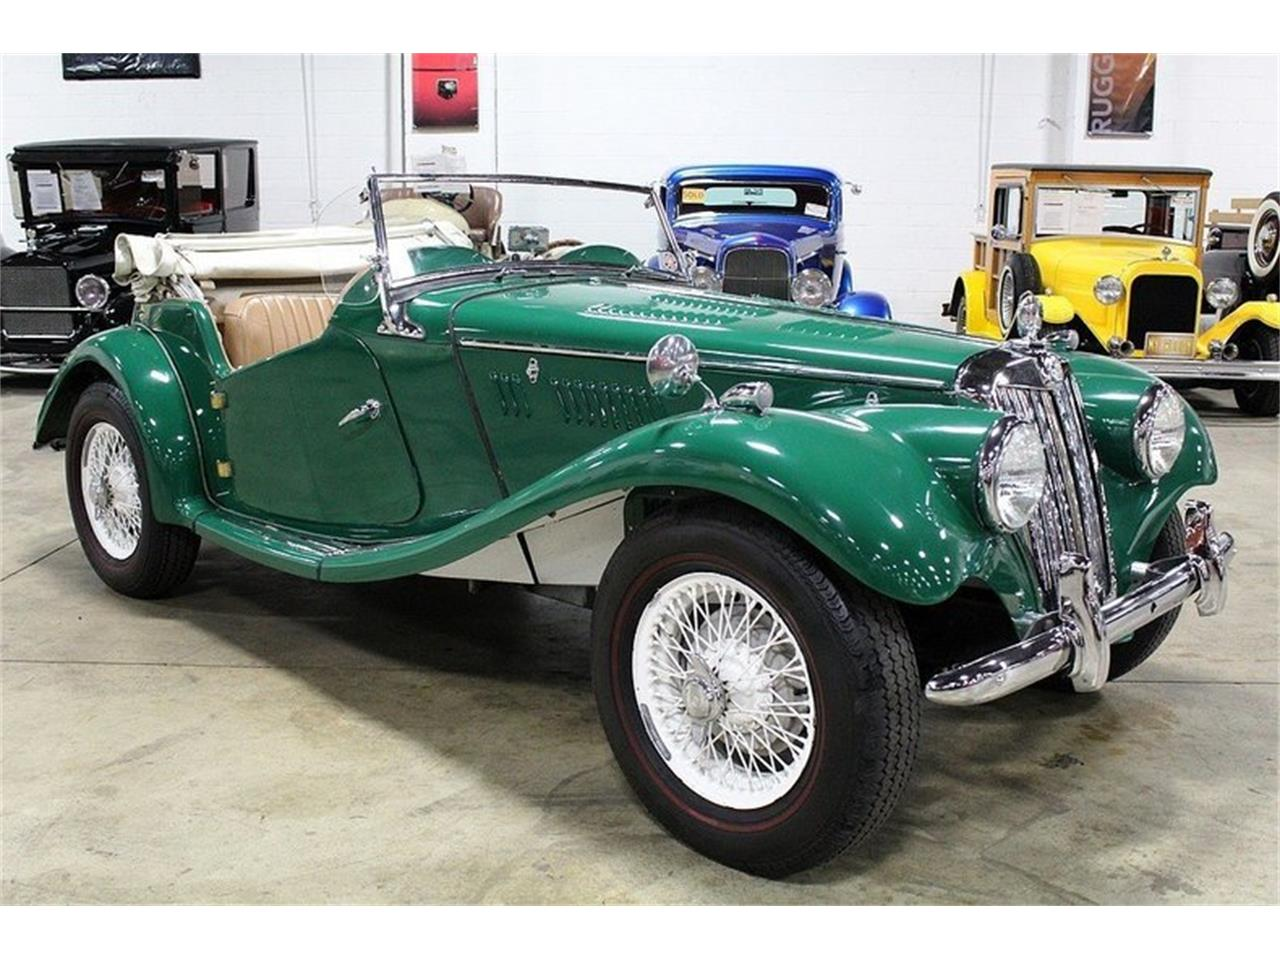 convertibles at every price range | ClassicCars.com Journal